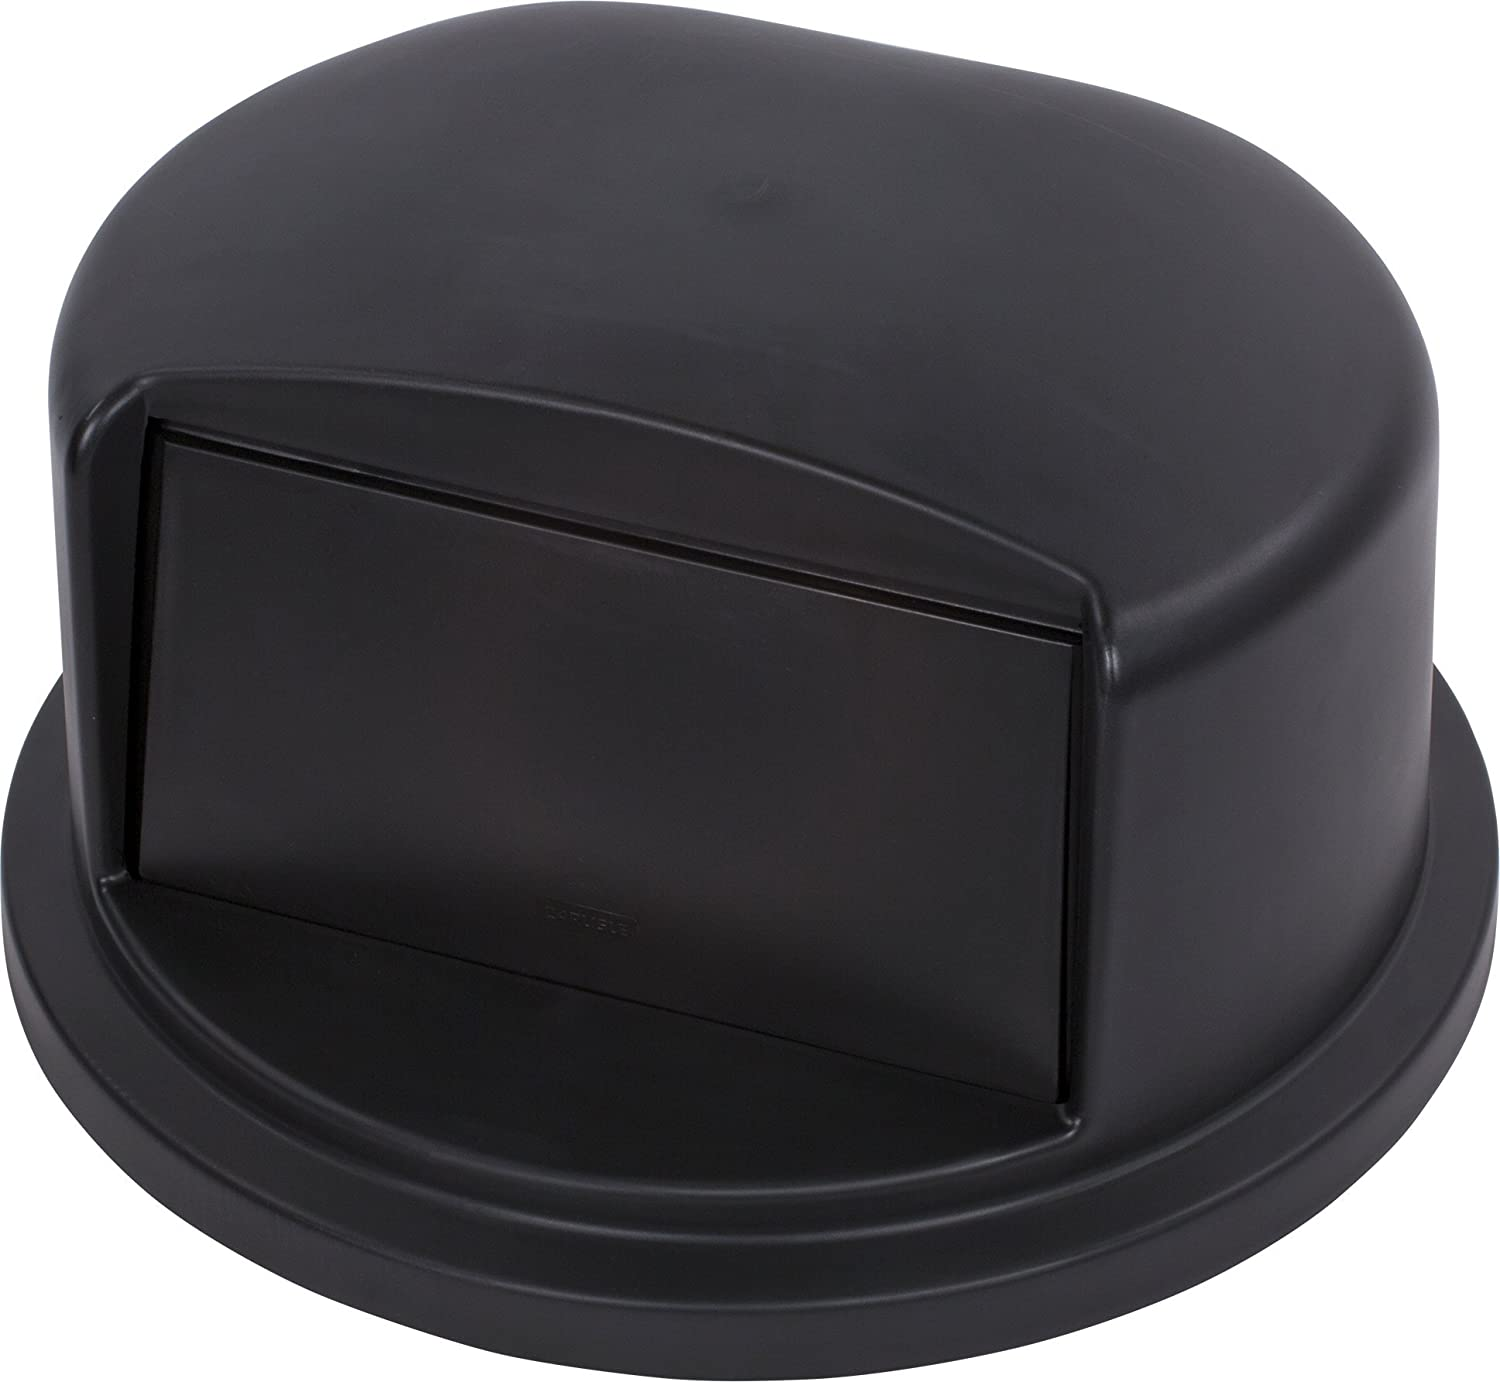 "Carlisle 34103403 Bronco Polyethylene Round Dome Lid, 22.84"" Diameter x 12.21"" Height, Black, for 32 Gallon Trash Containers"